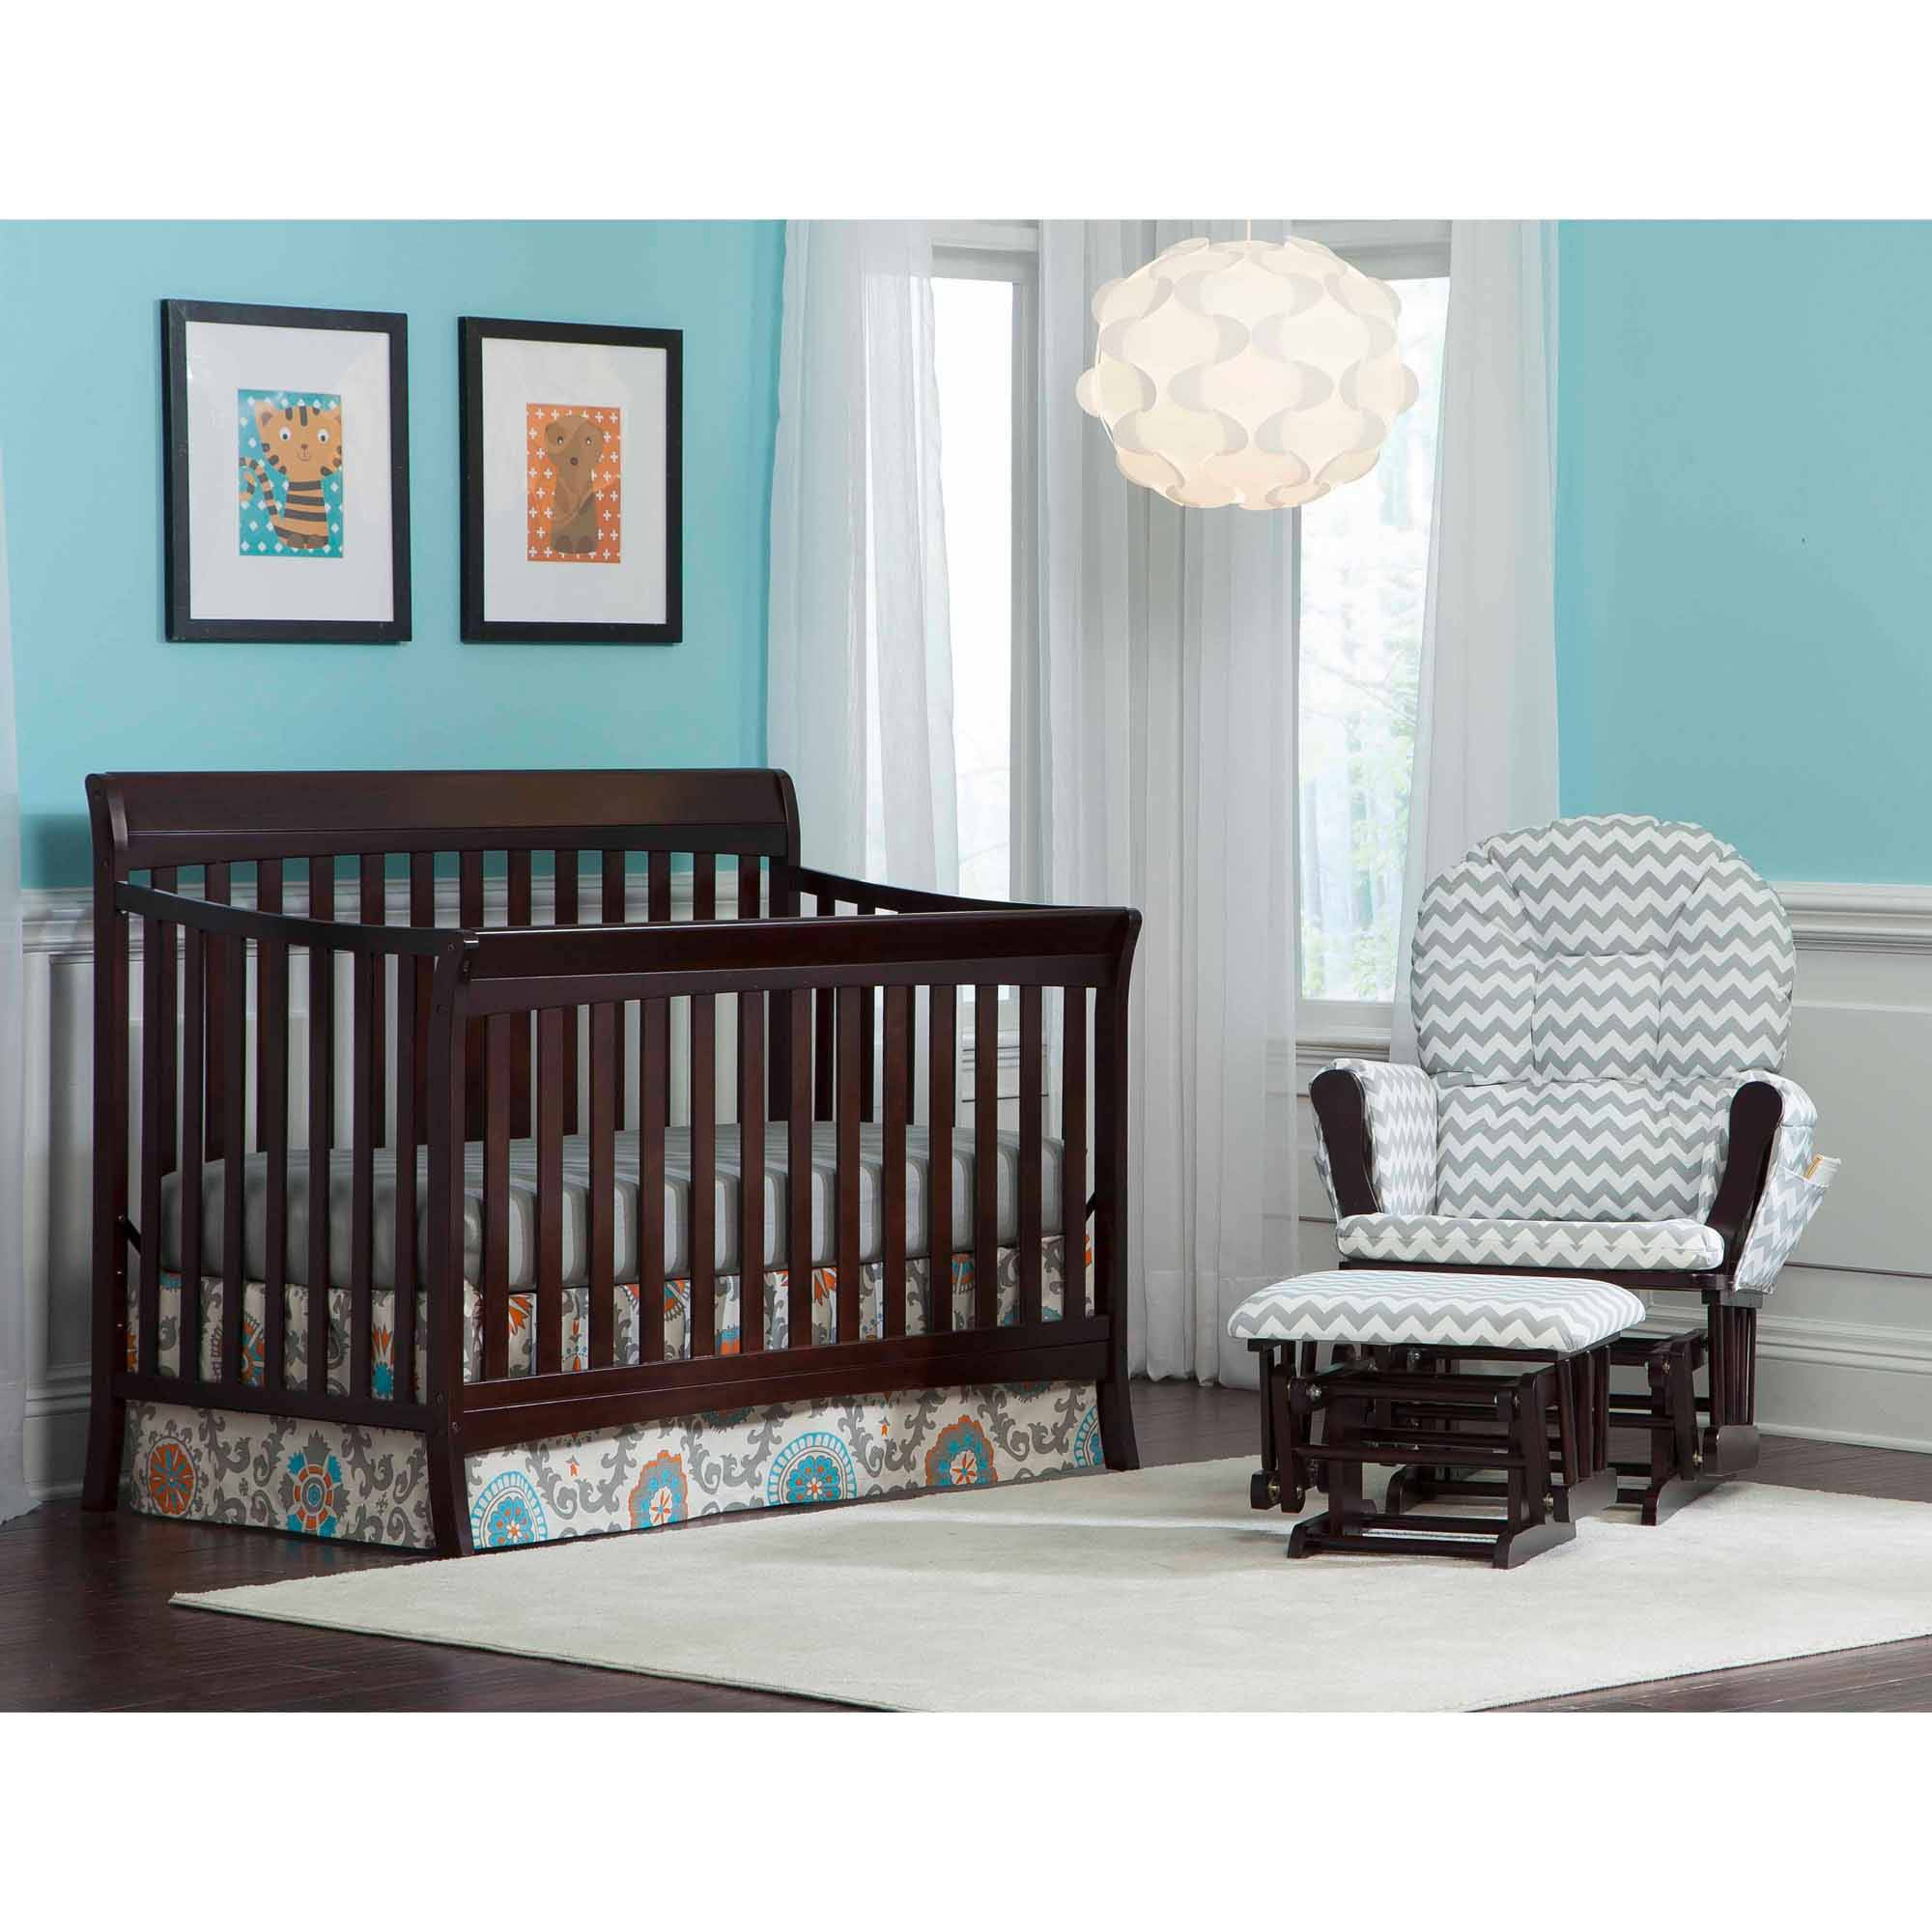 Storkcraft Avalon 4-in-1 Convertible Crib, Espresso